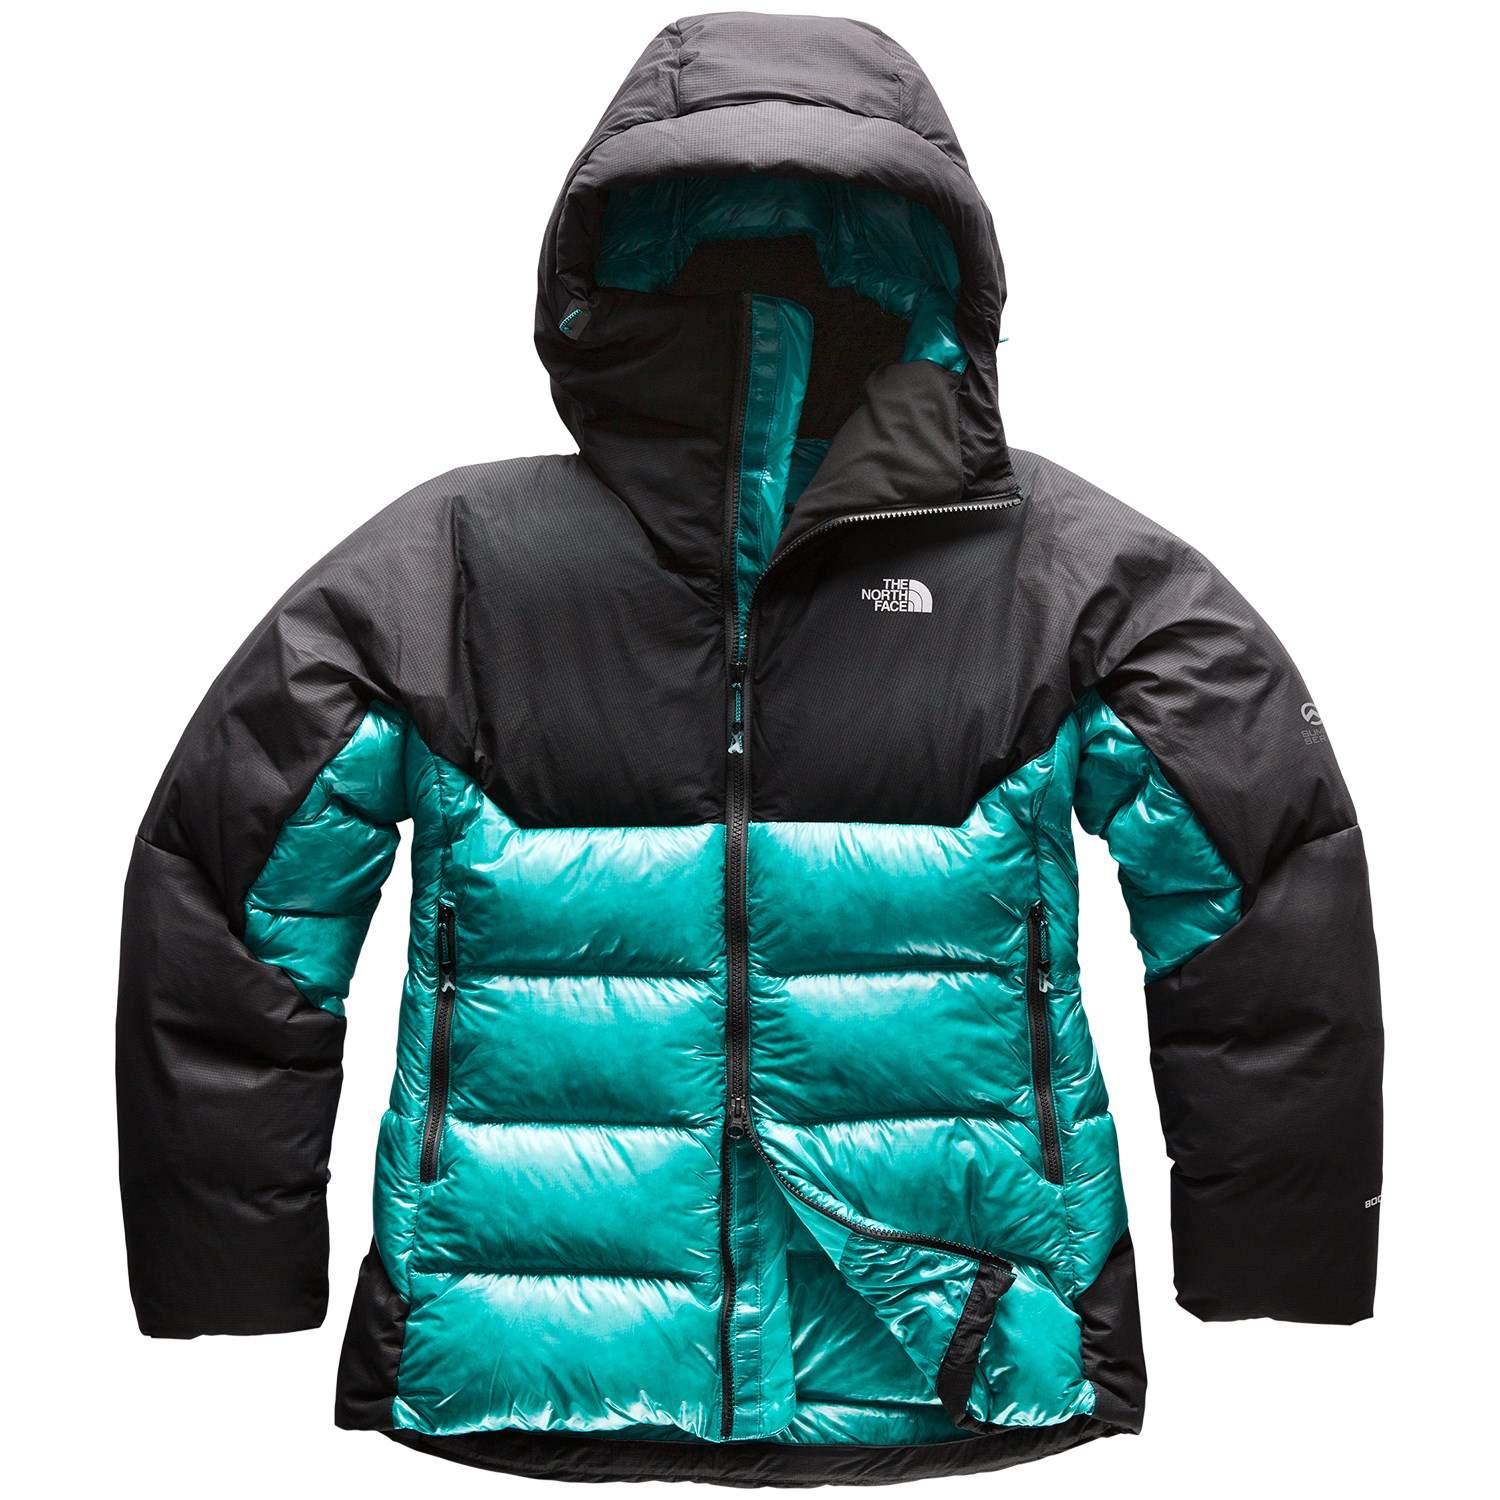 d735969df The North Face Summit L6 AW Down Belay Parka - Women's